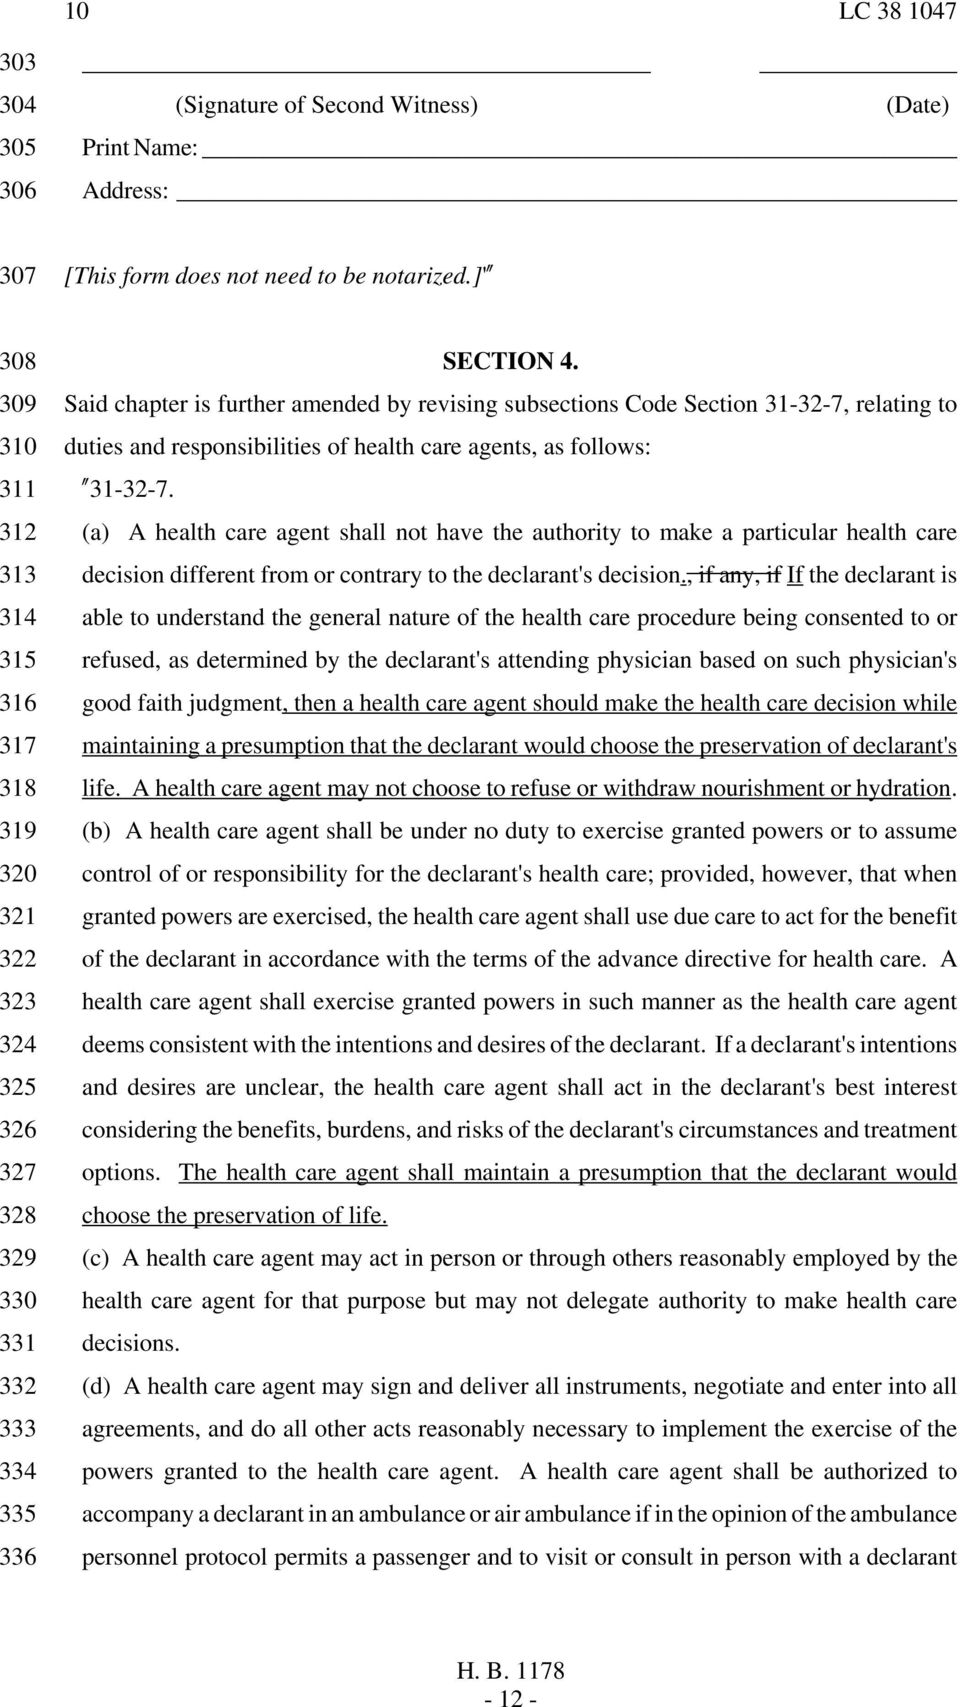 "Said chapter is further amended by revising subsections Code Section 31-32-7, relating to duties and responsibilities of health care agents, as follows: ""31-32-7."